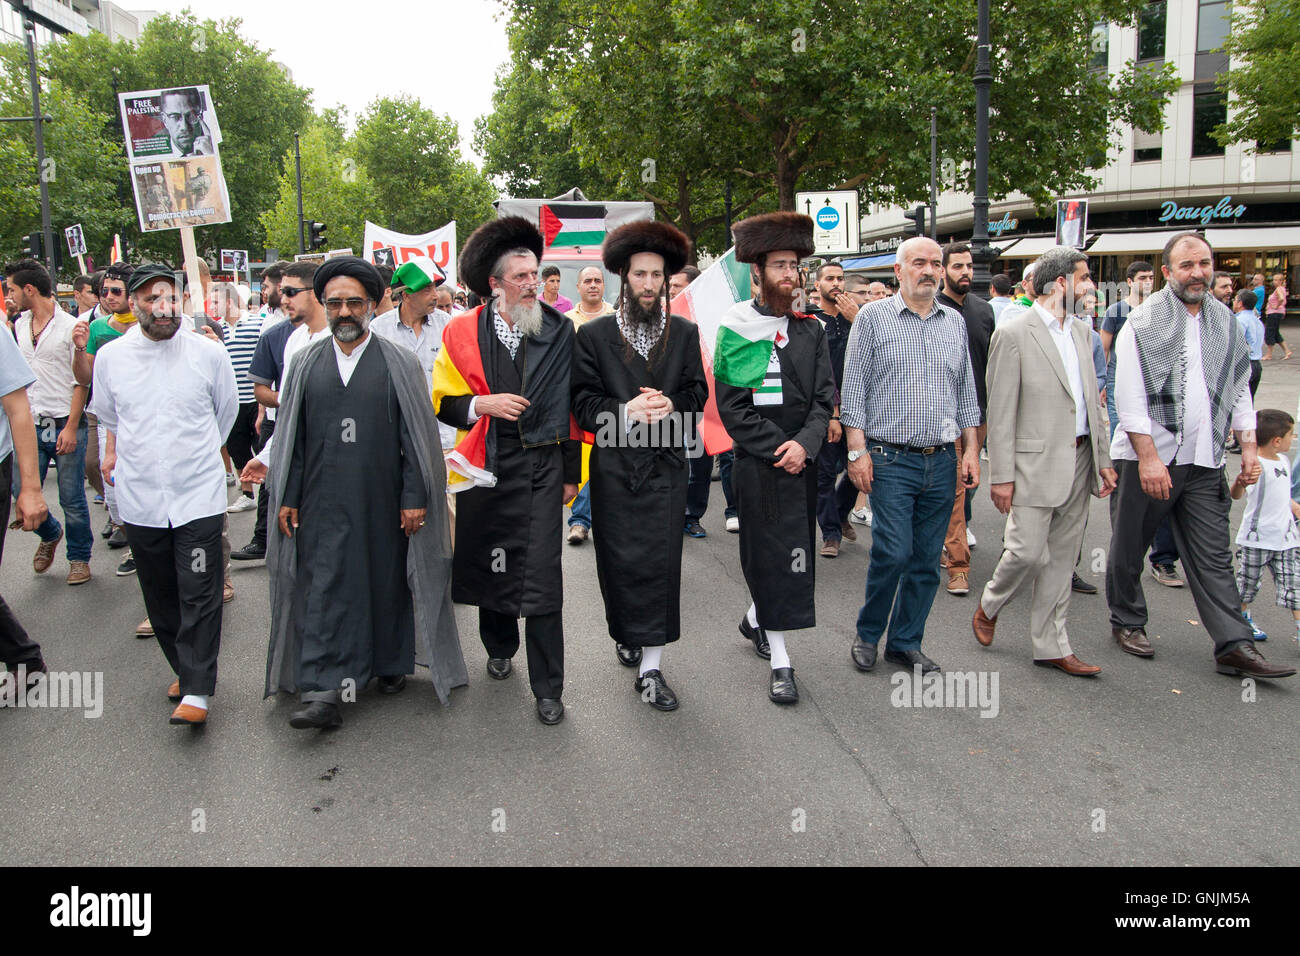 Al-Quds Day 2013 in Berlin. Germany. - Stock Image